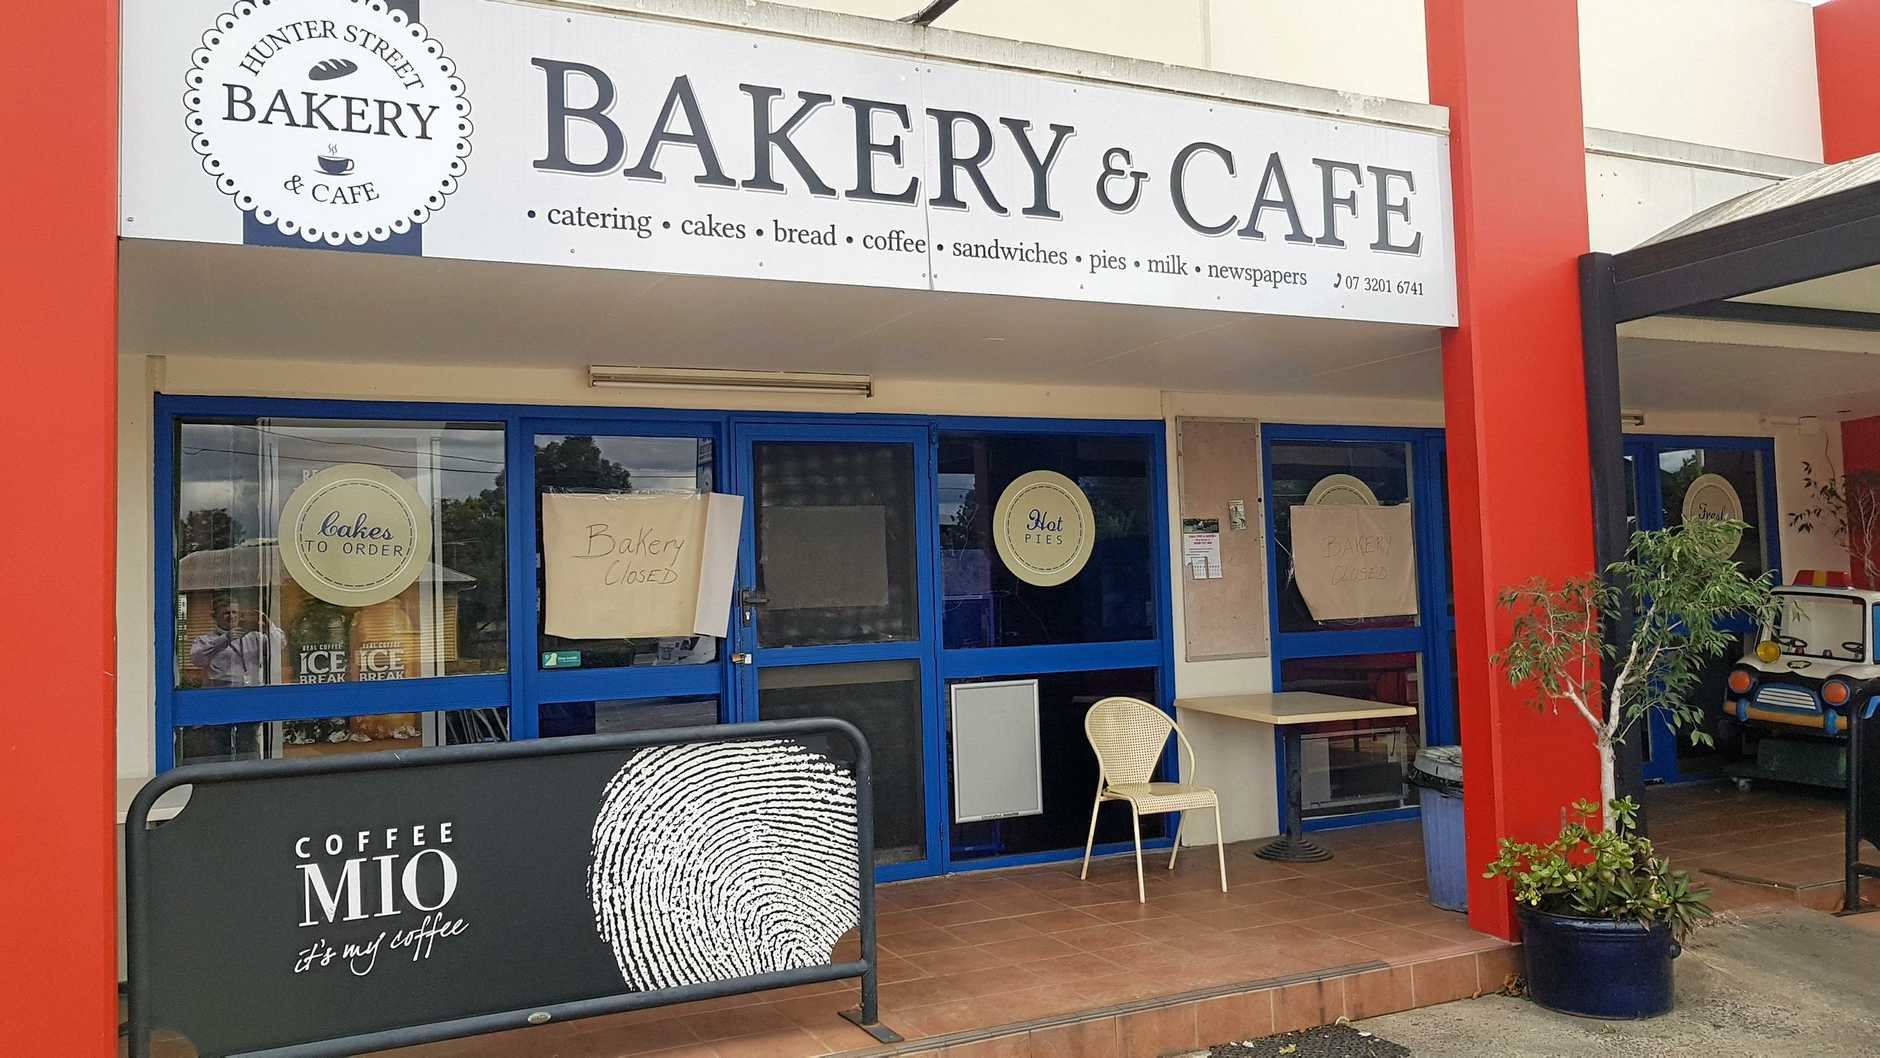 The Hunter Street Bakery remains closed, but it is best known as the old Billy Mac's Bakery.